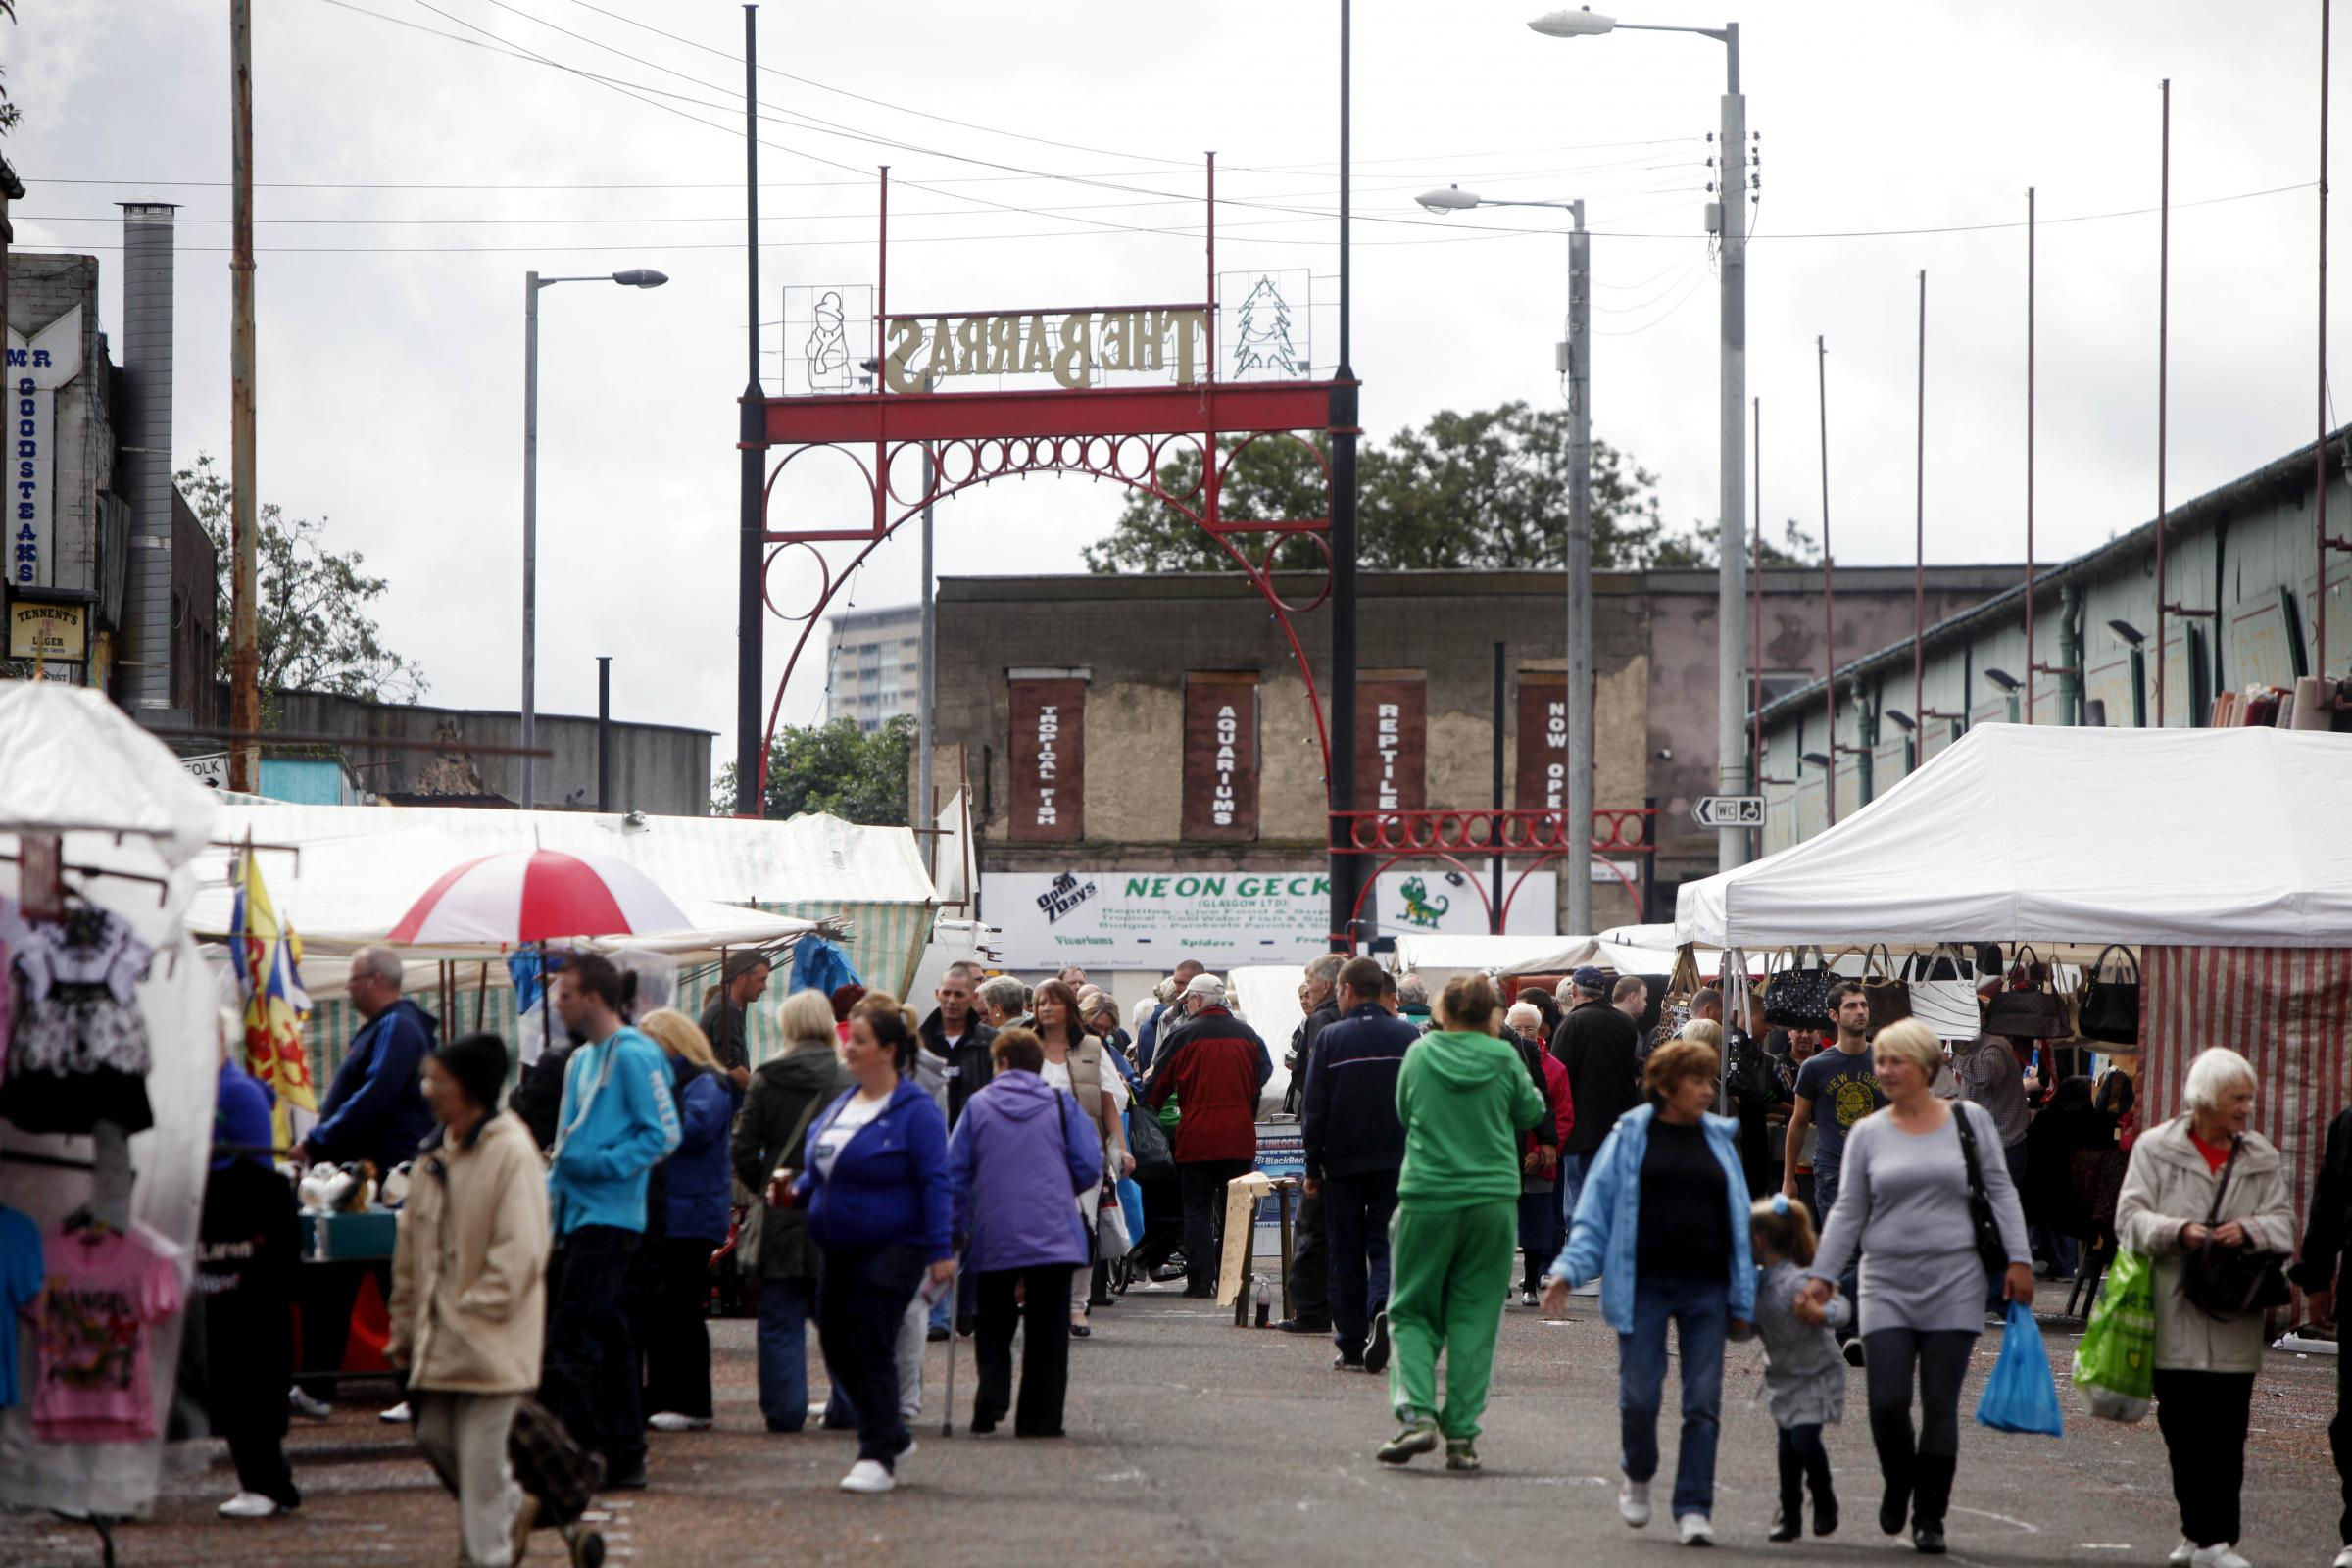 The Barras: Glasgow's famous market is 100 years old, but is there a future for it?